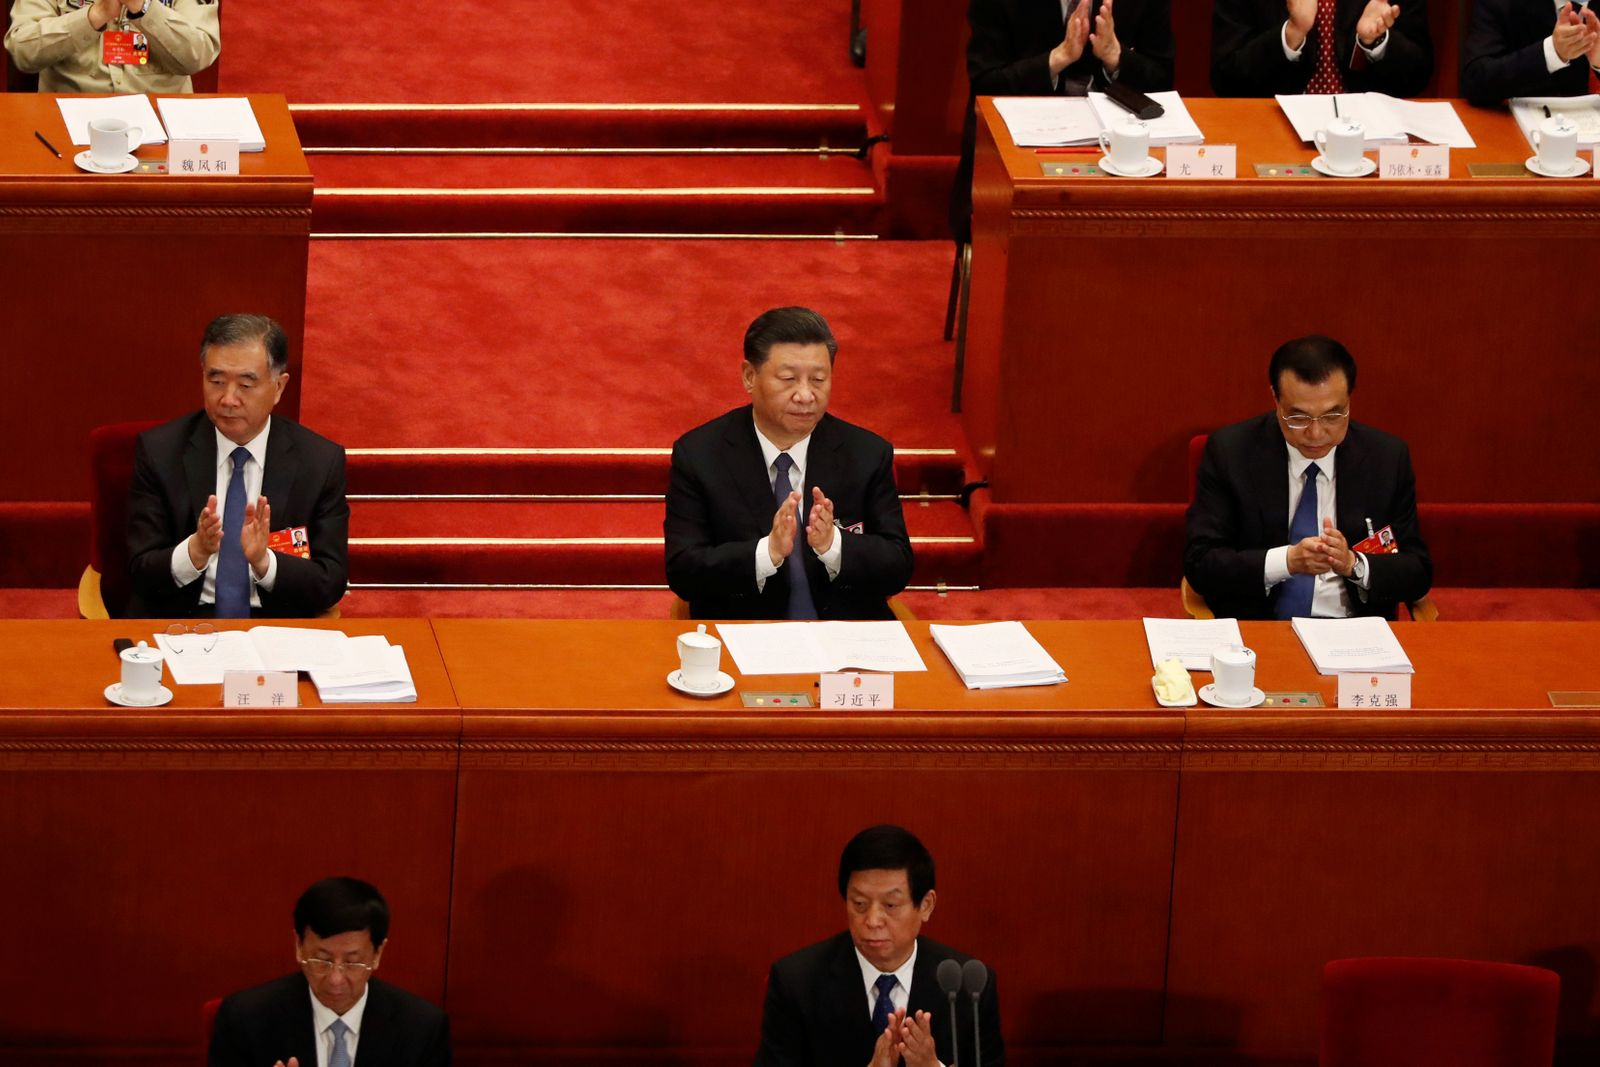 Chinese President Xi Jinping and other officials attend the opening session of NPC in Beijing